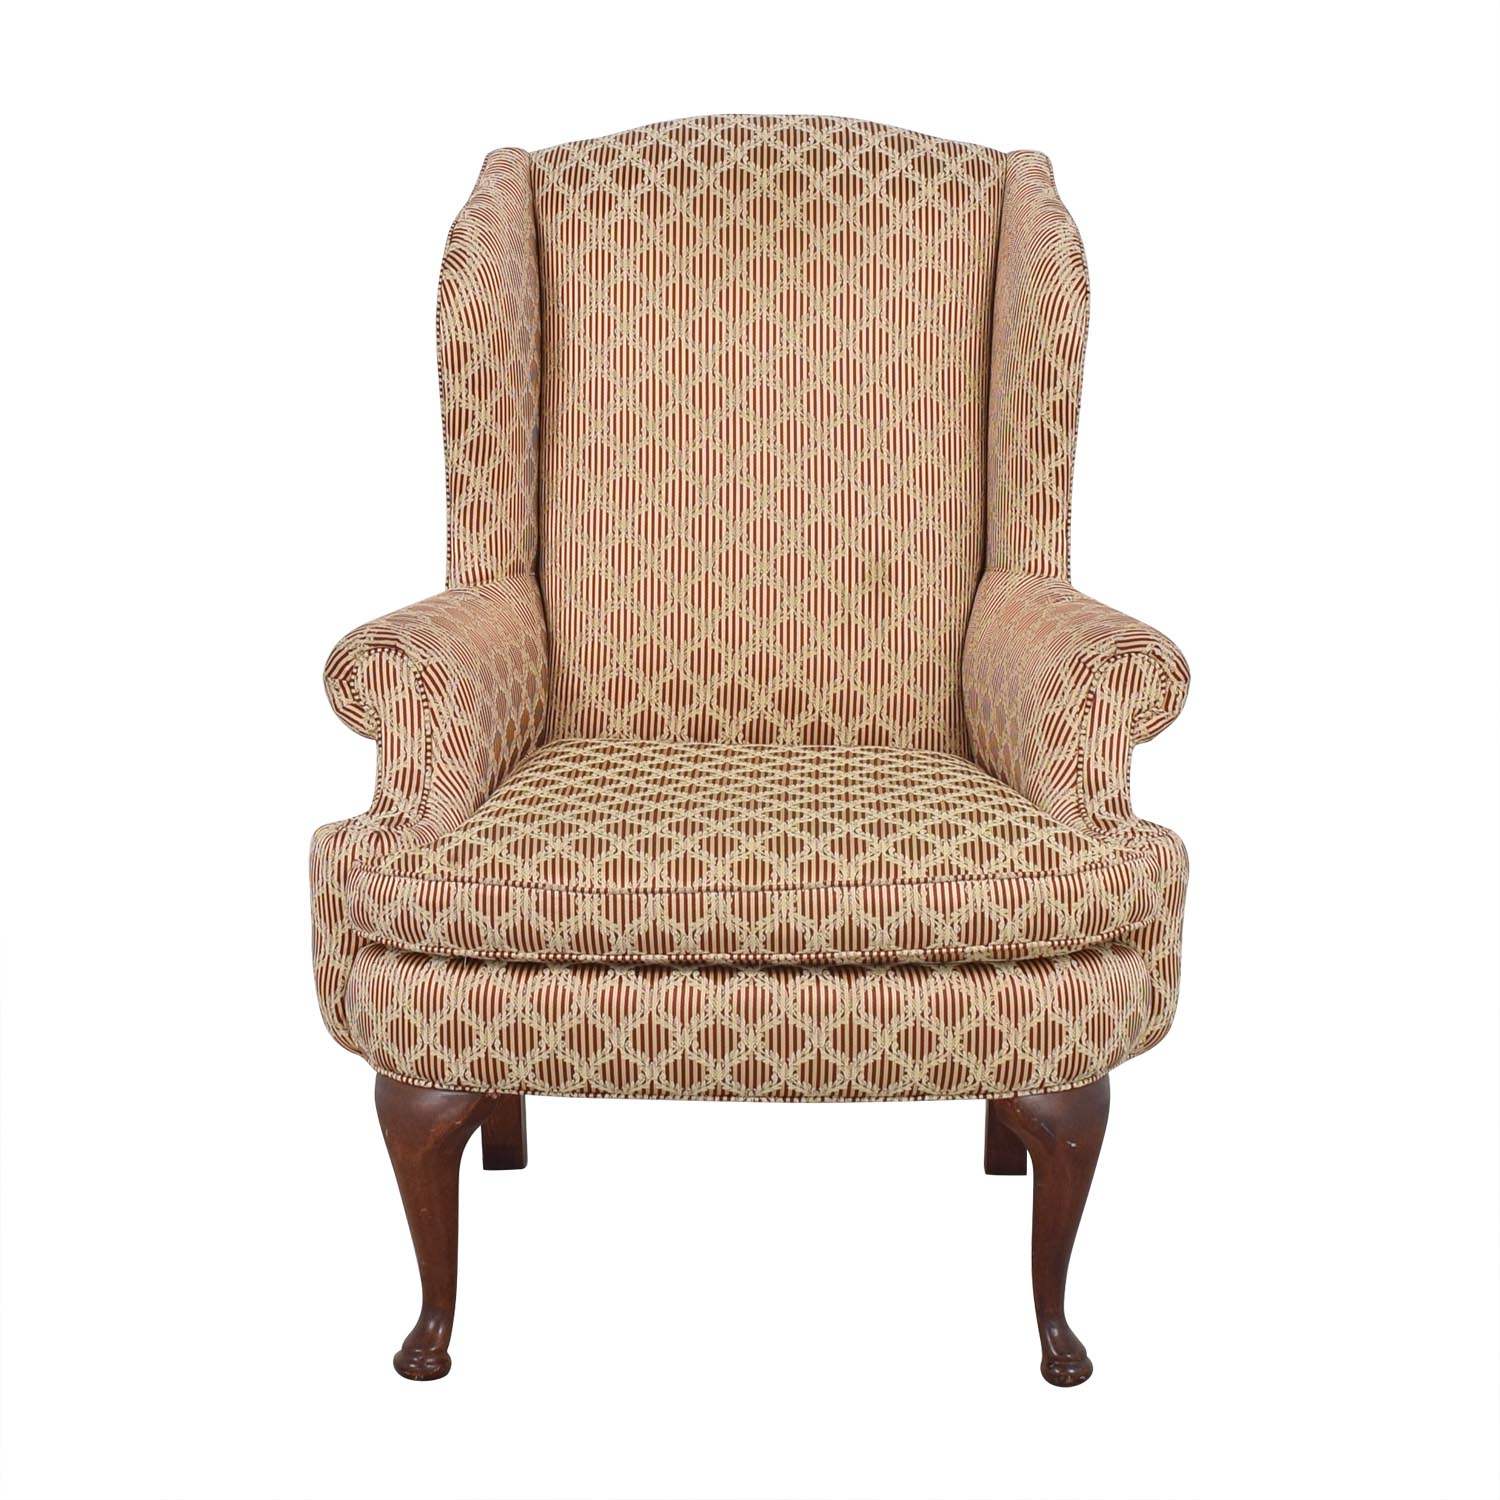 Plunkett Furniture Plunkett Upholstered Wingback Chair discount